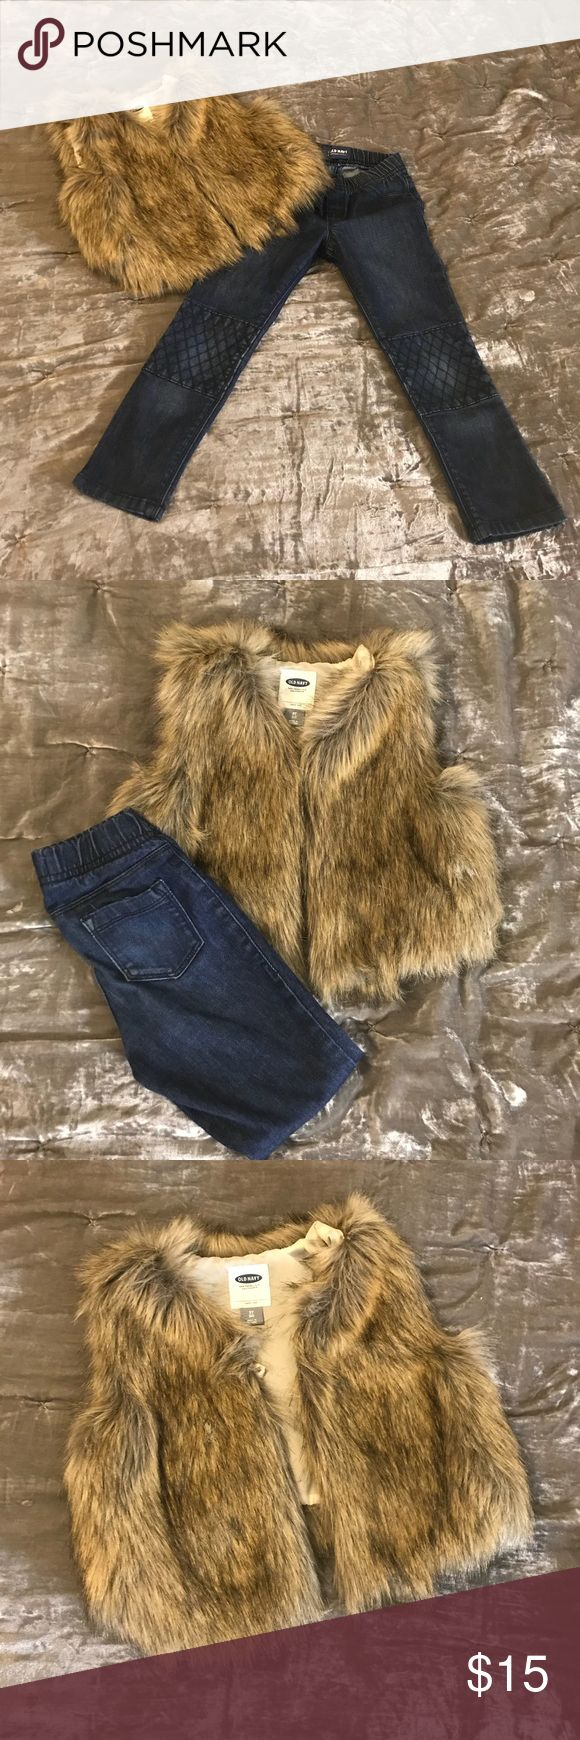 Old Navy 5T vest and Old Navy 5T jeans Old Navy Faux fur vest with button closure. The vest is paired with Old Navy elastic waist dark denim in 5T. Gently used. Old Navy Matching Sets